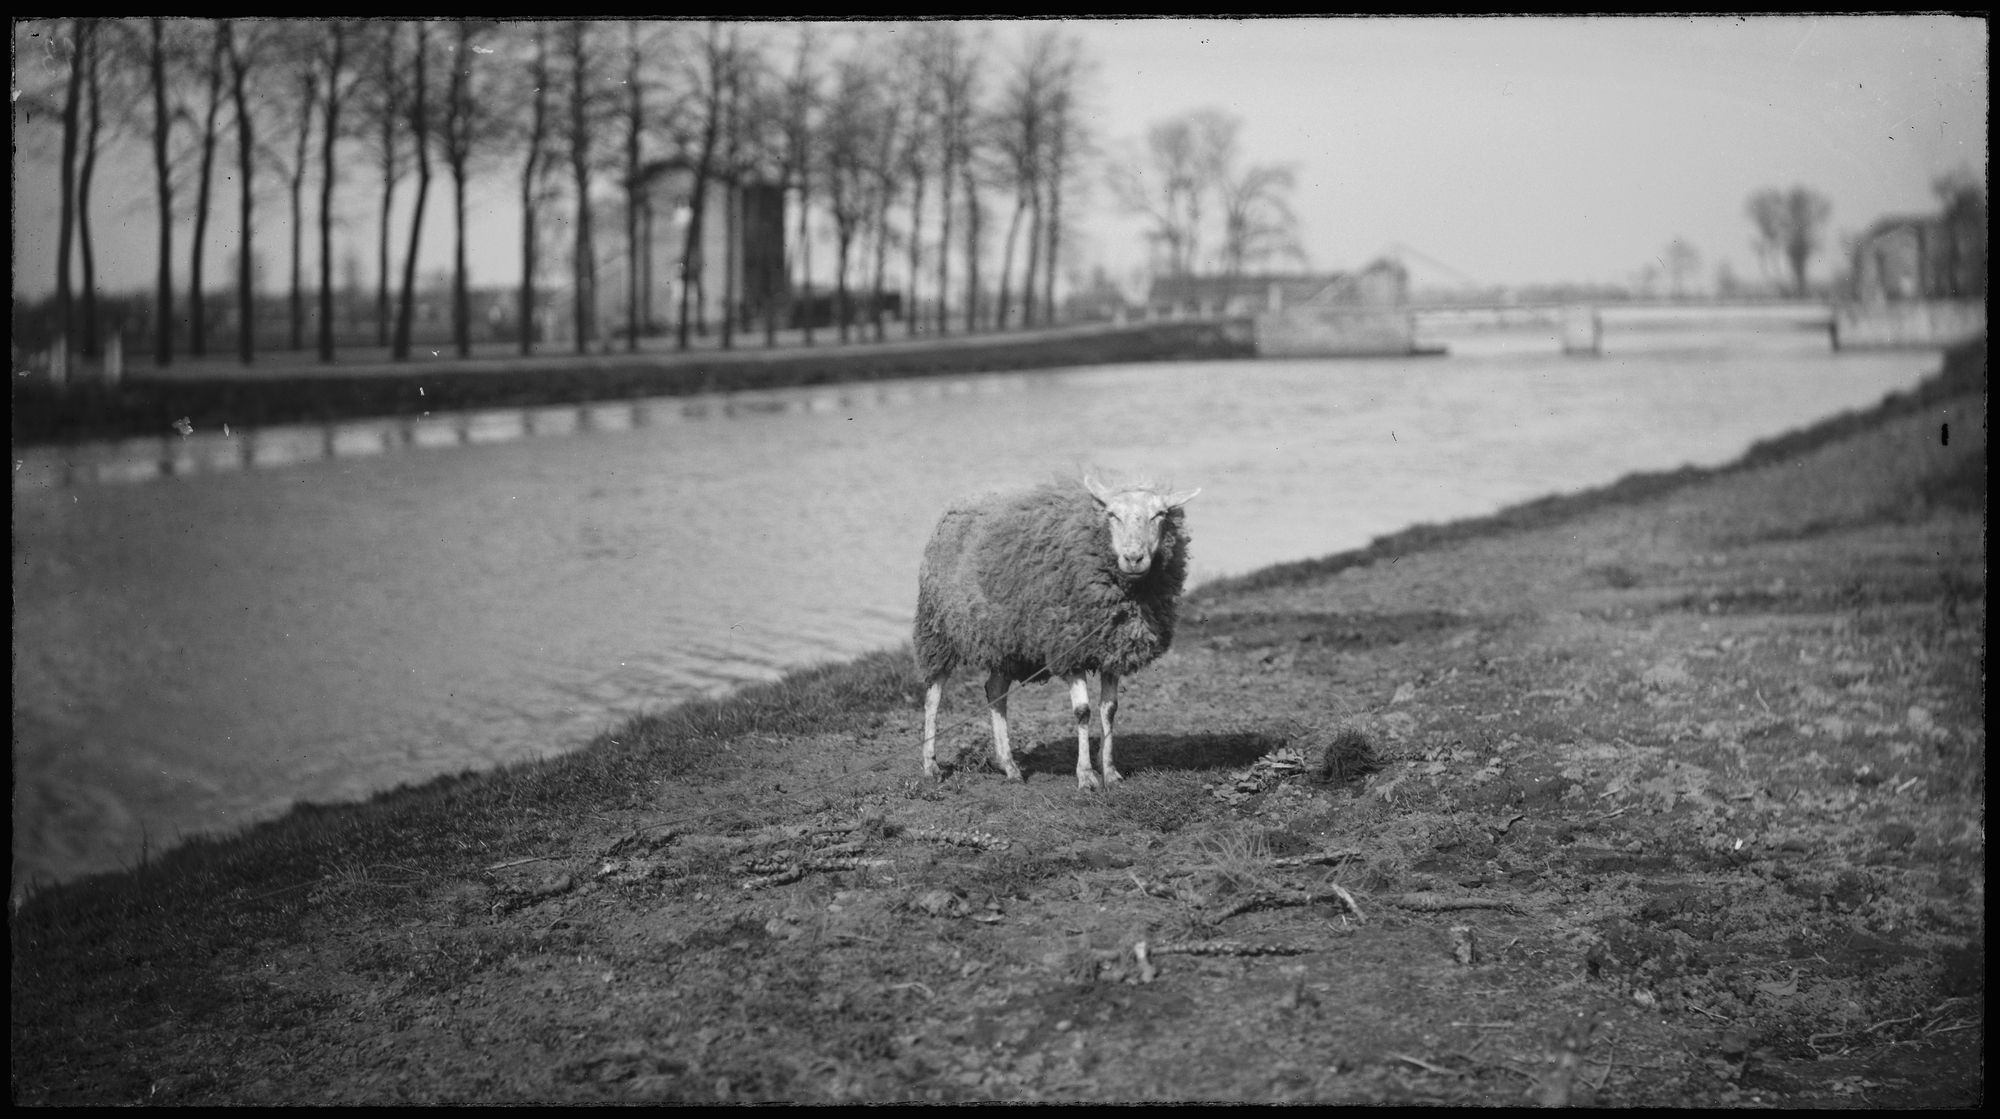 Schaap in landschap